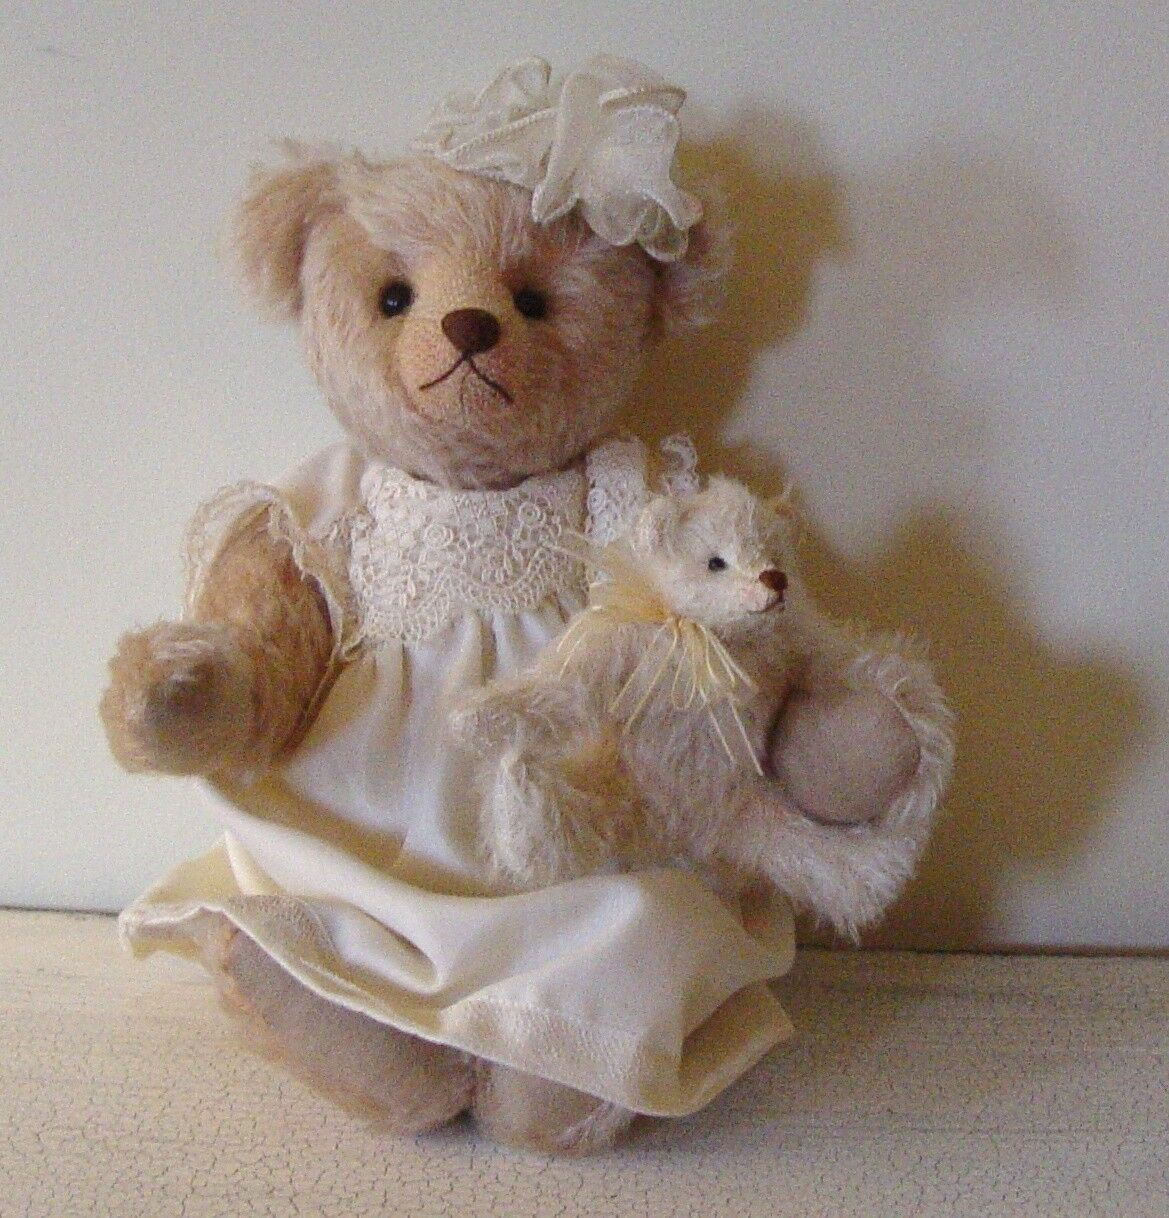 MICHELLE  CREAM COLOrosso, JOINTED LIM ED BEAR BY JOAN WOESSNER, BEAR ELEGANCE